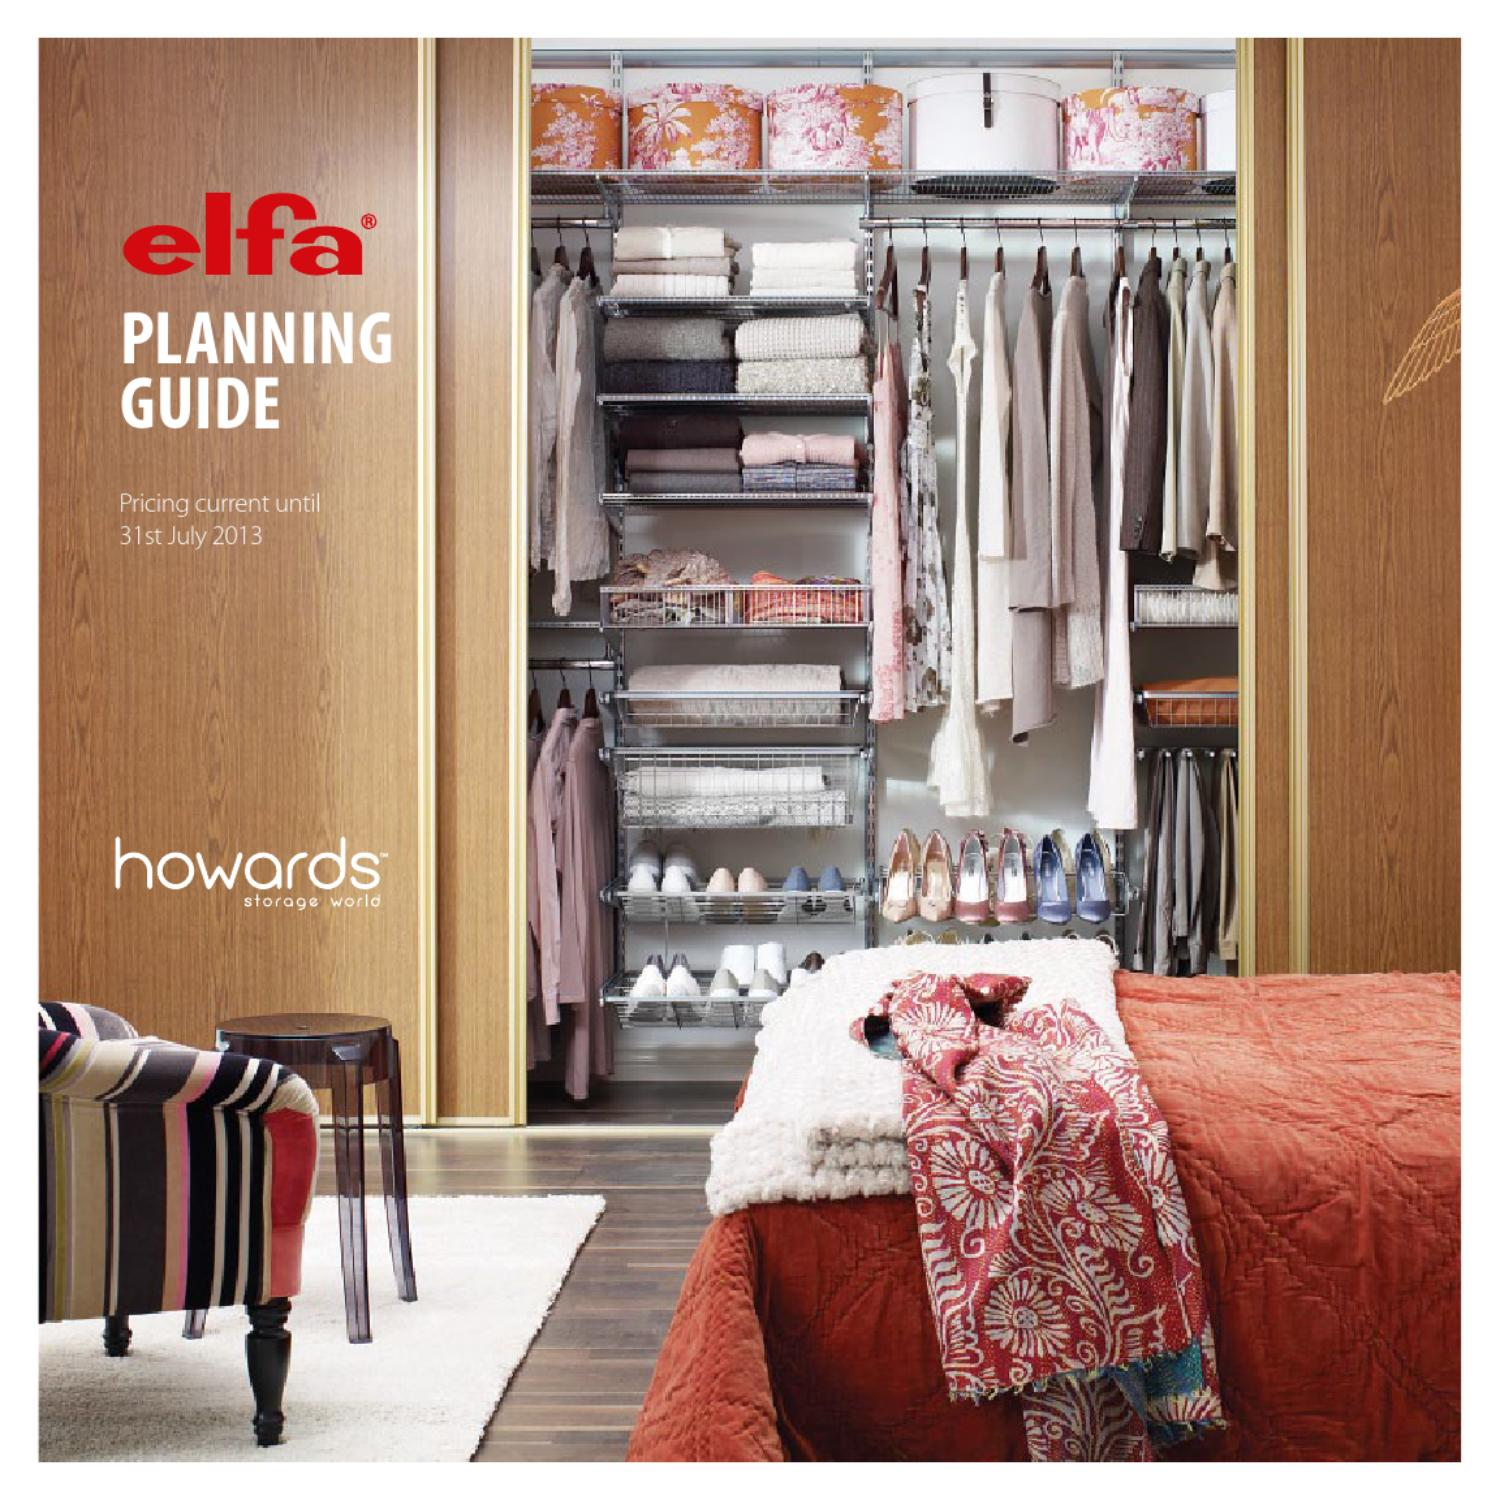 Hsw Elfa Planning Guide 2013 By Howards Storage World Aust